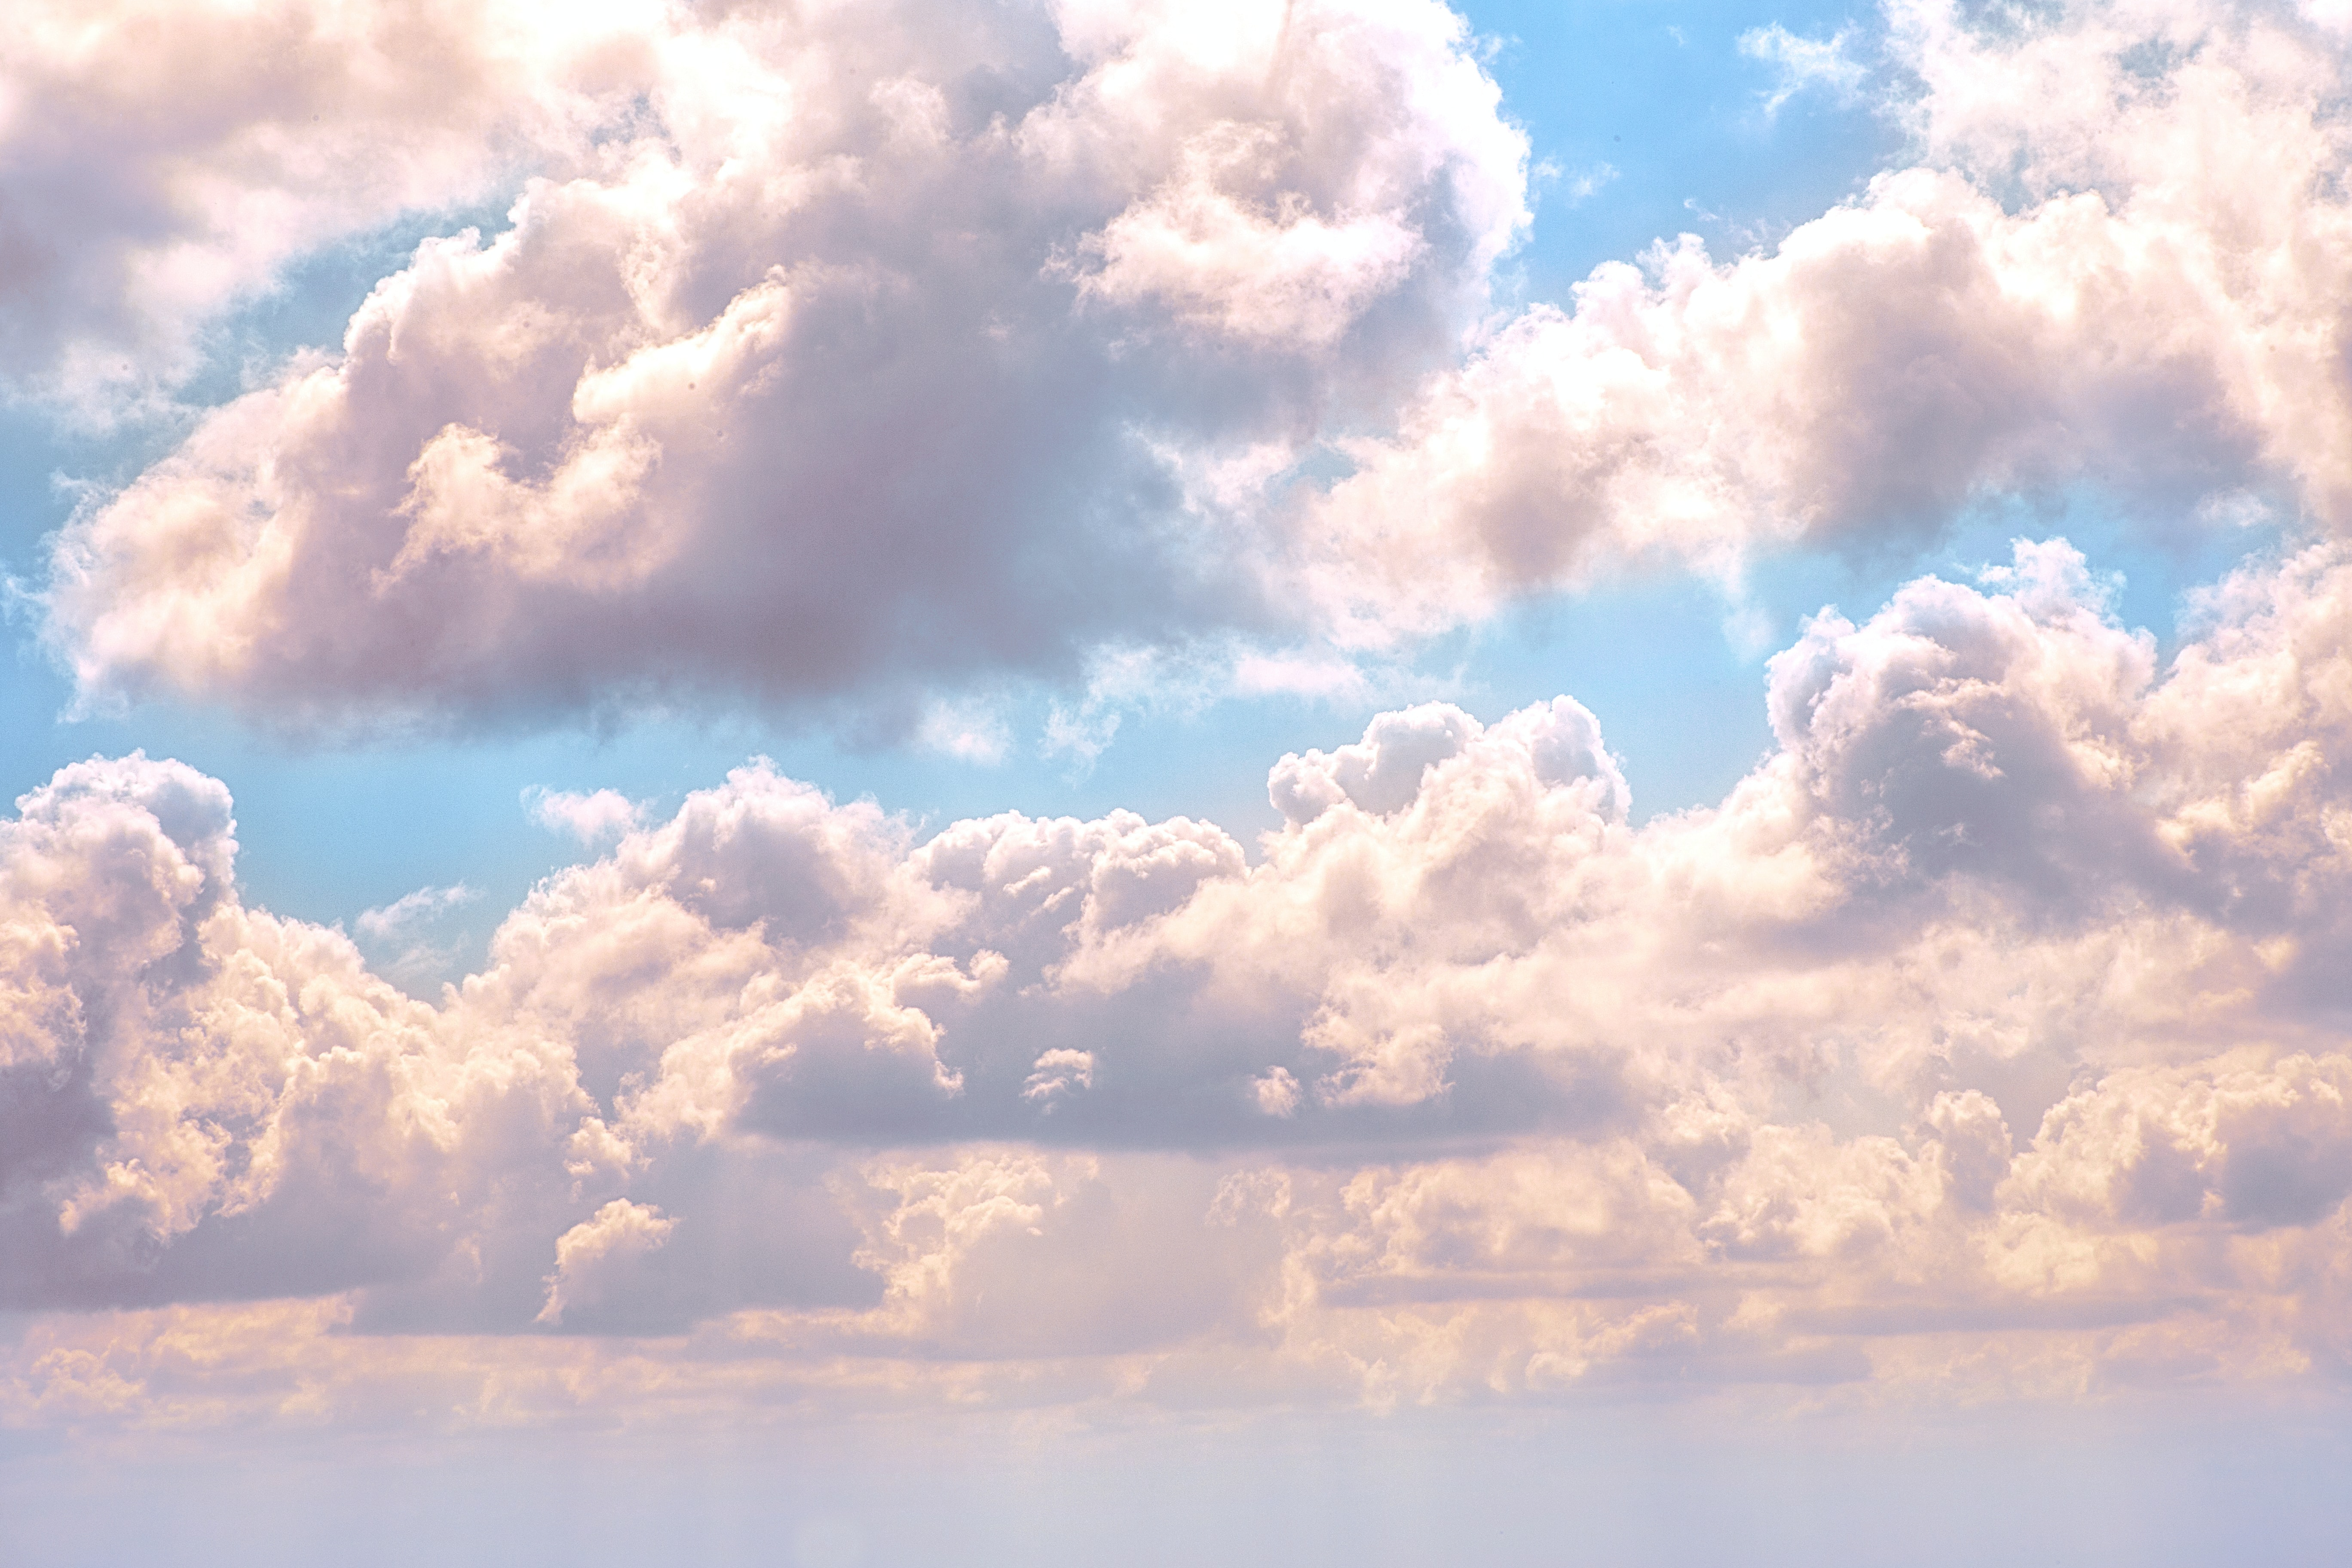 cloudy sky at daytime